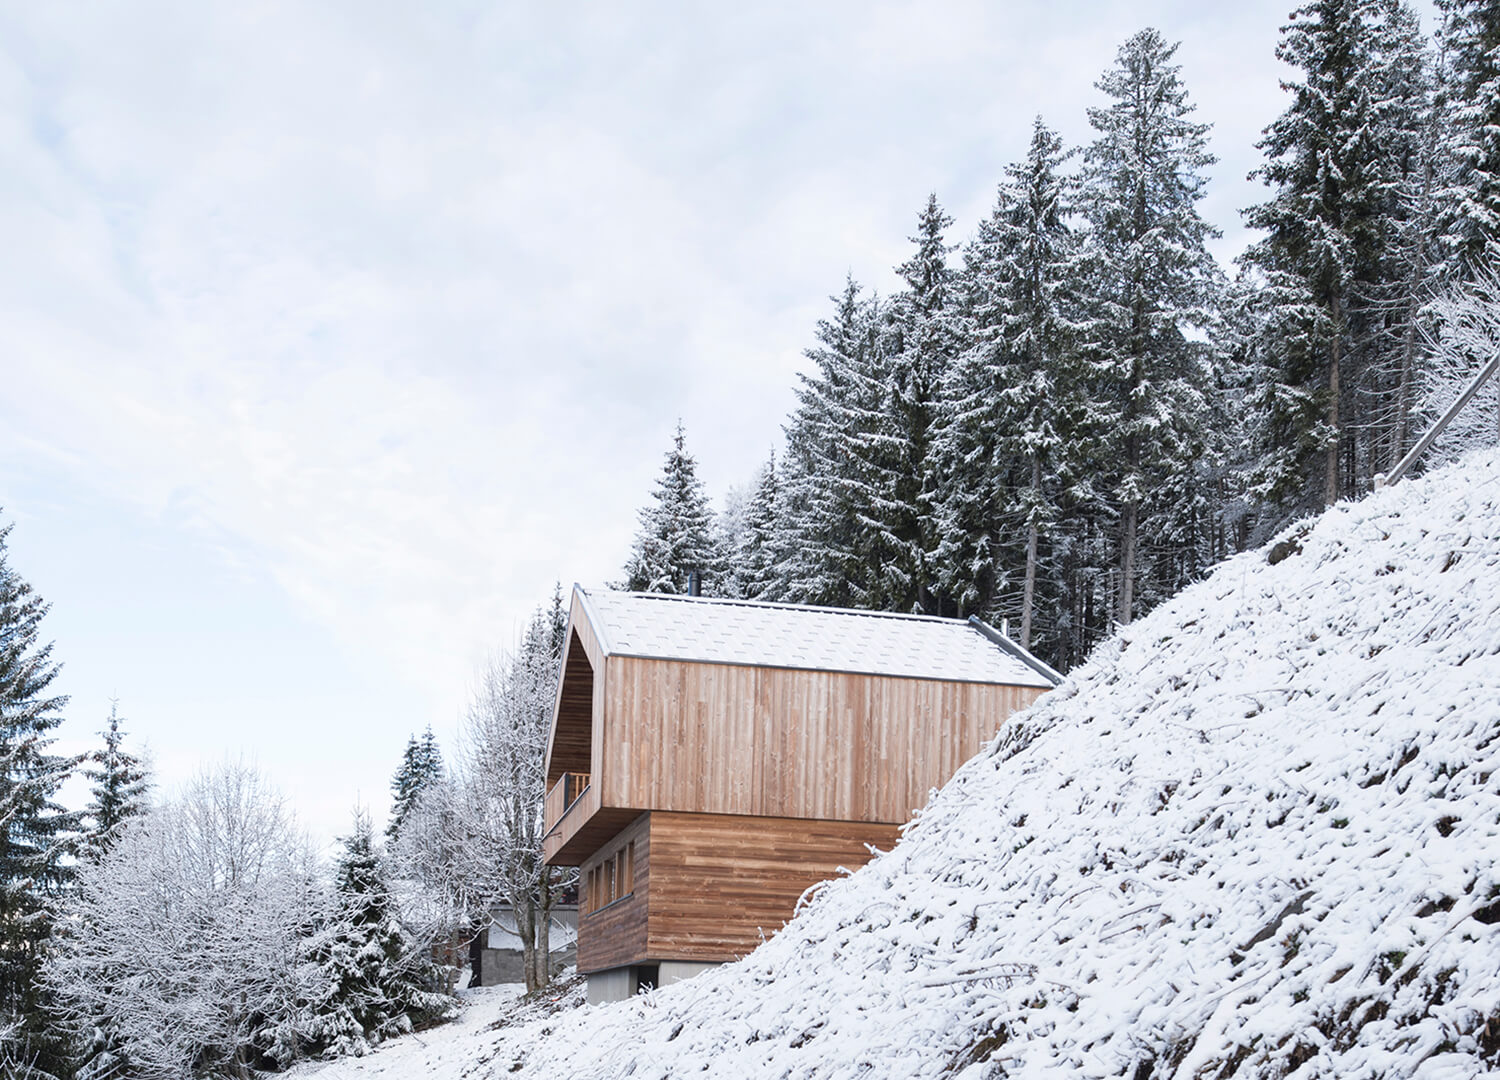 est living interiors alpine living studio razavir mountain house simone bossi.01 1